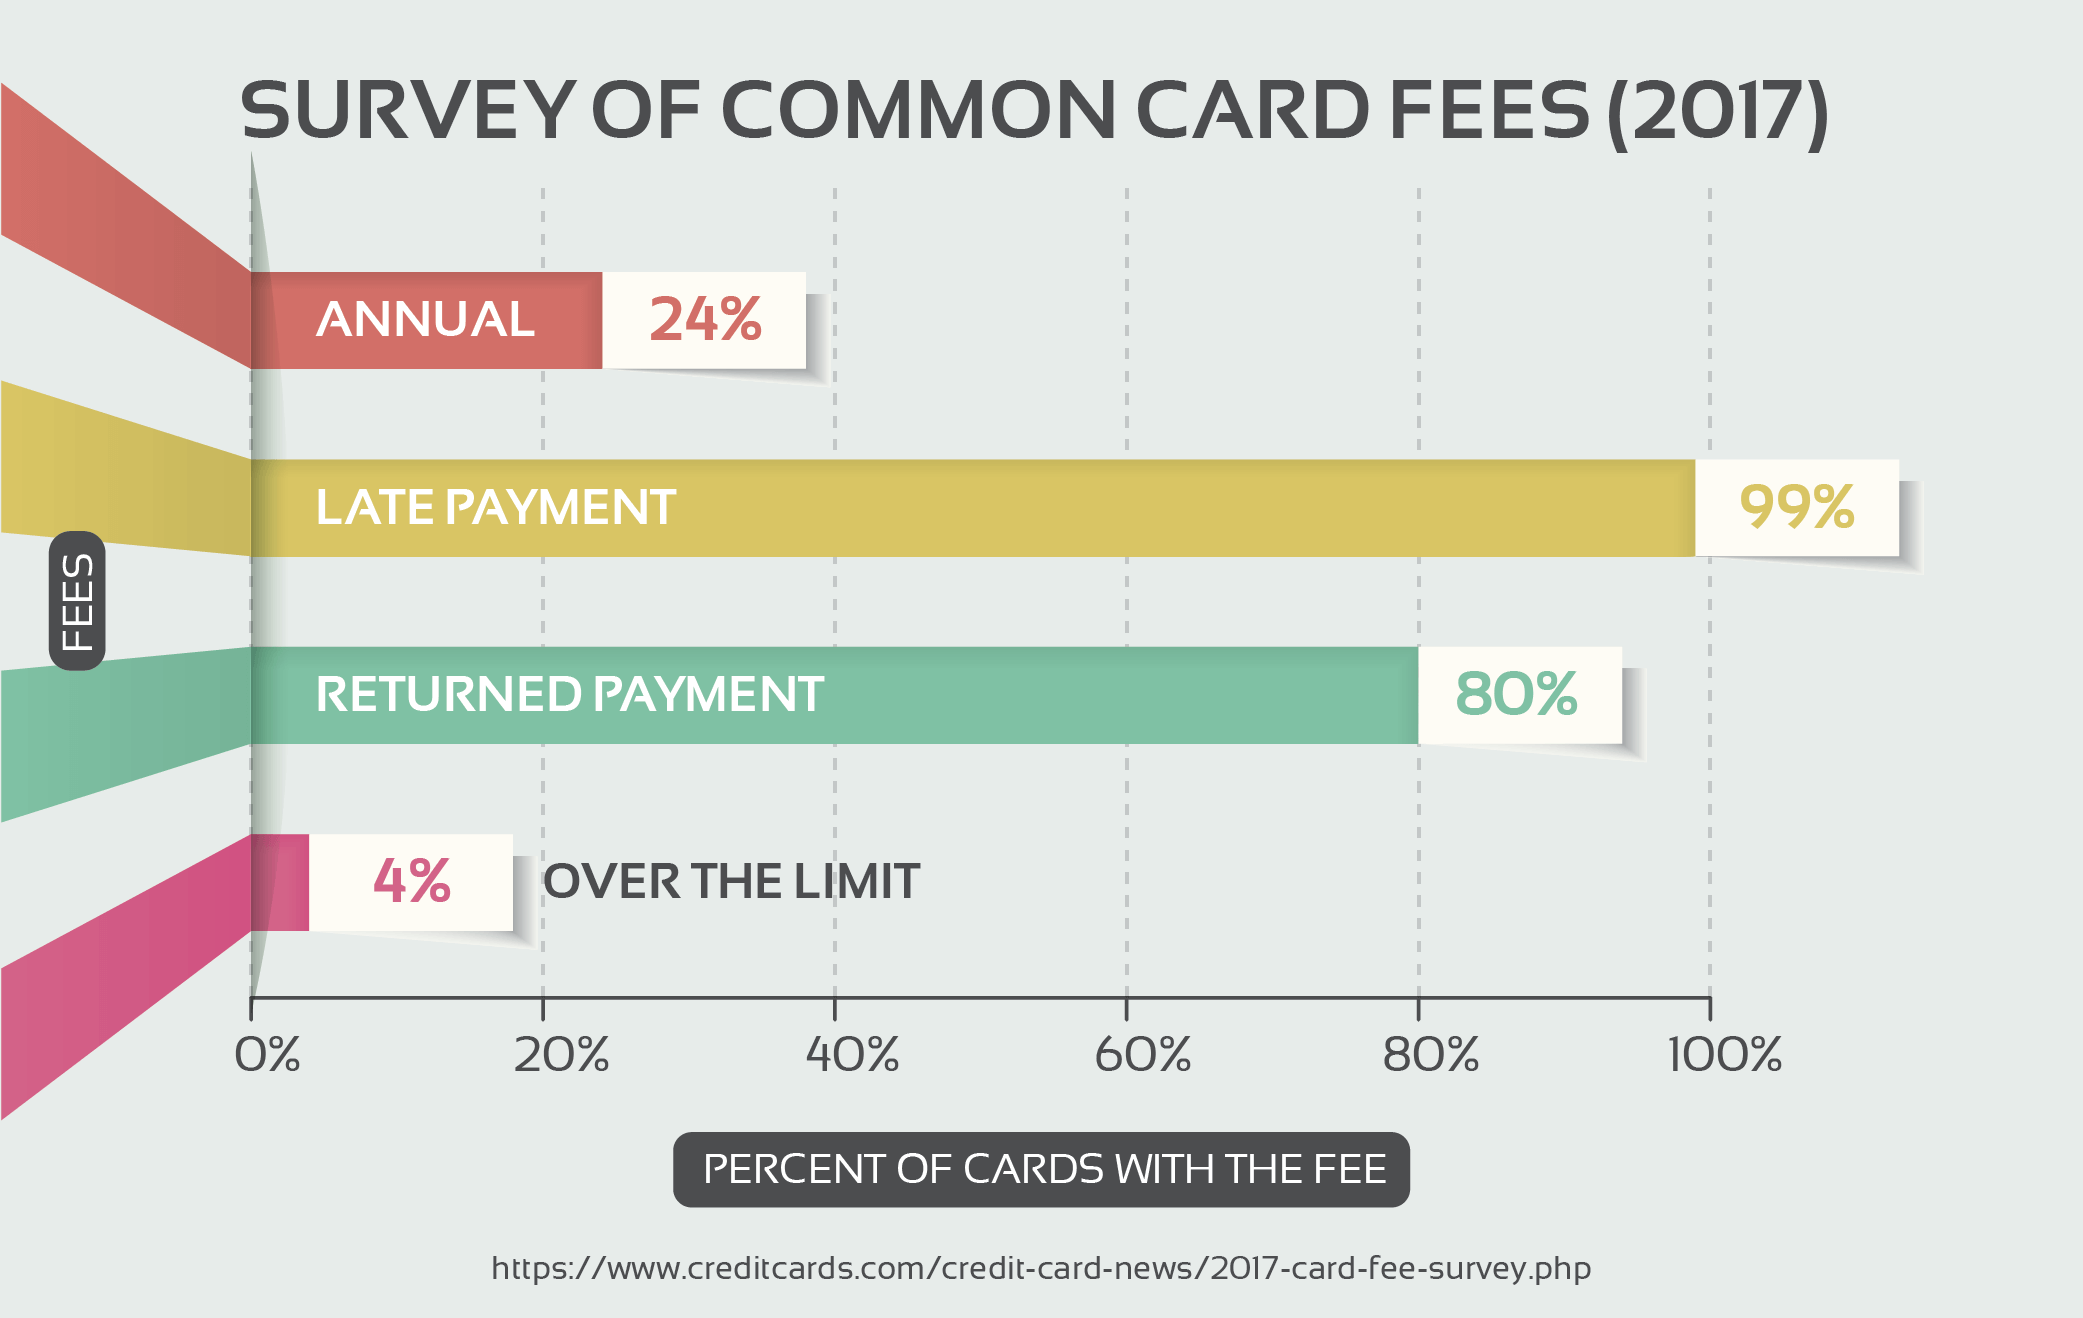 Survey of Common Card Fees (2017)